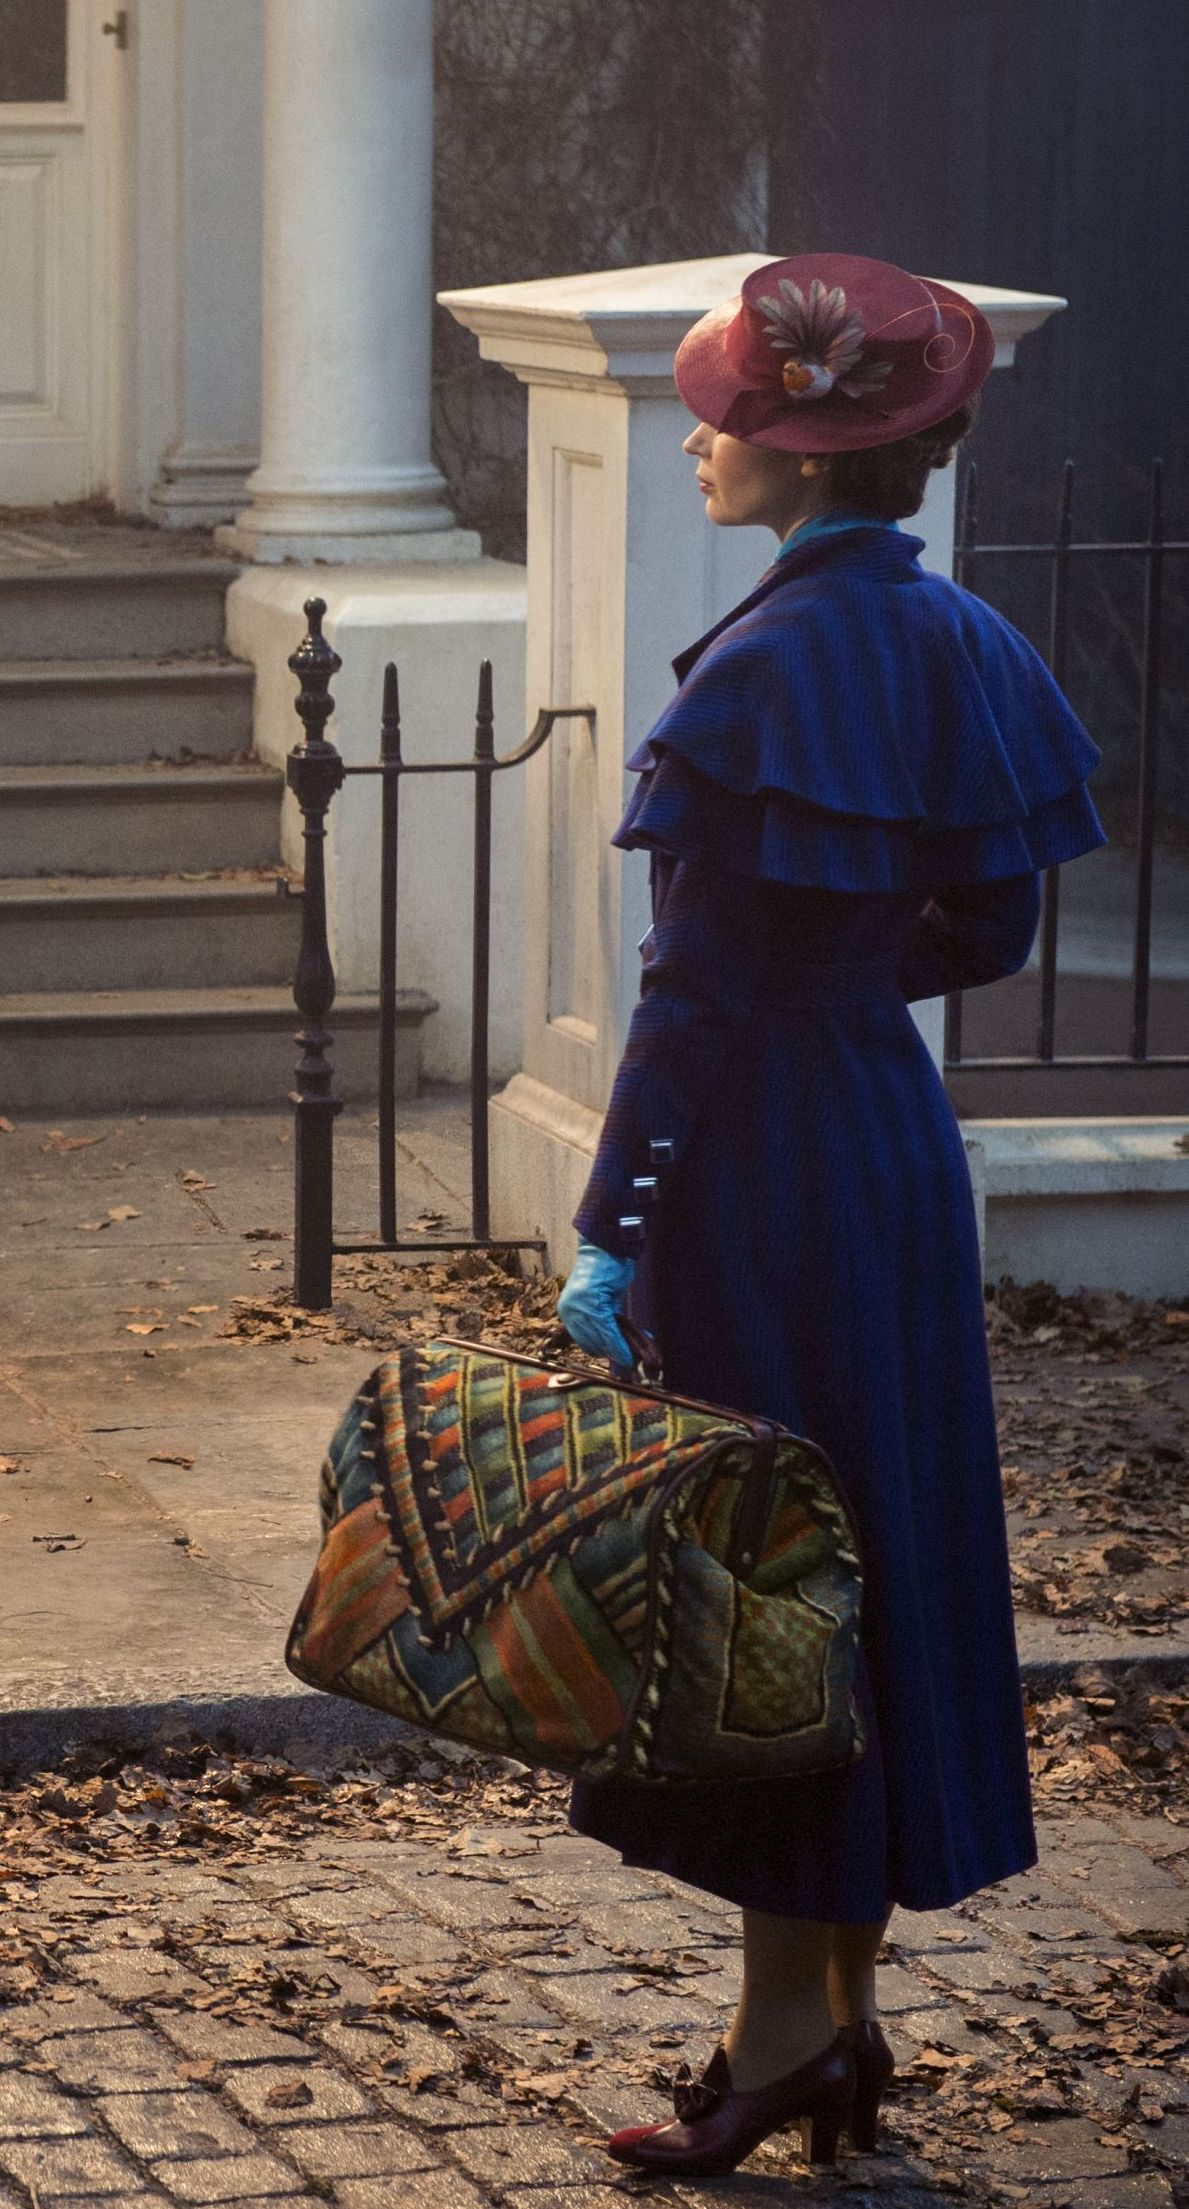 First look at Emily Blunt in 'Mary Poppins Returns'